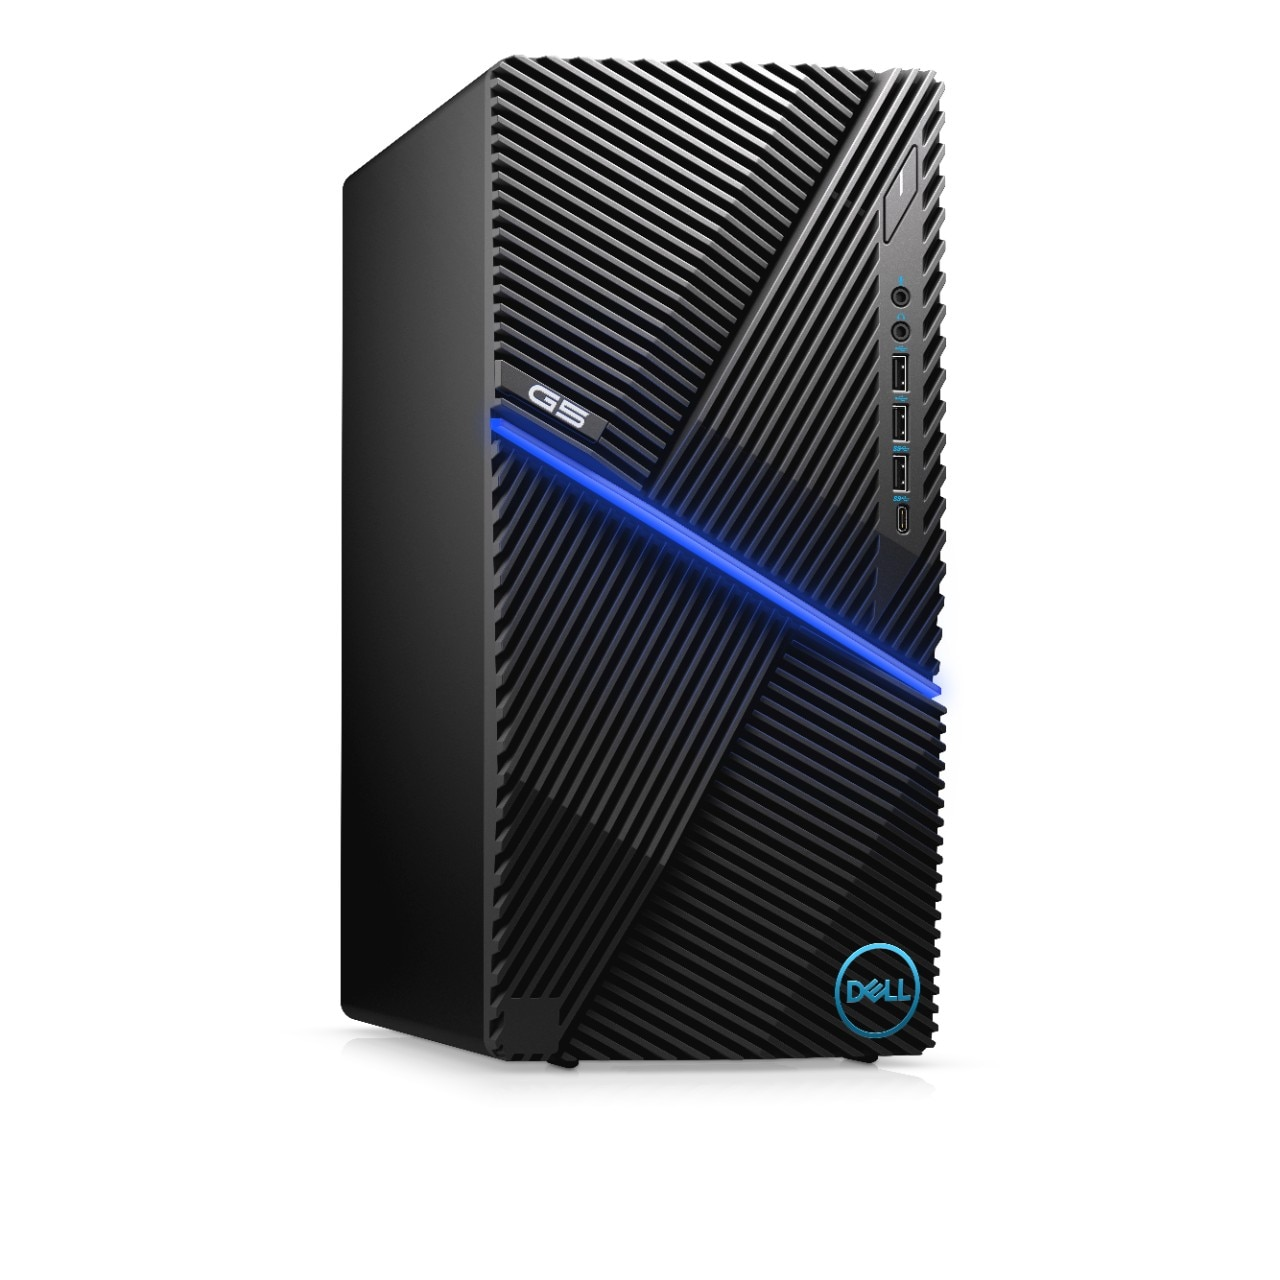 Dell G5 5000 Gaming Desktop